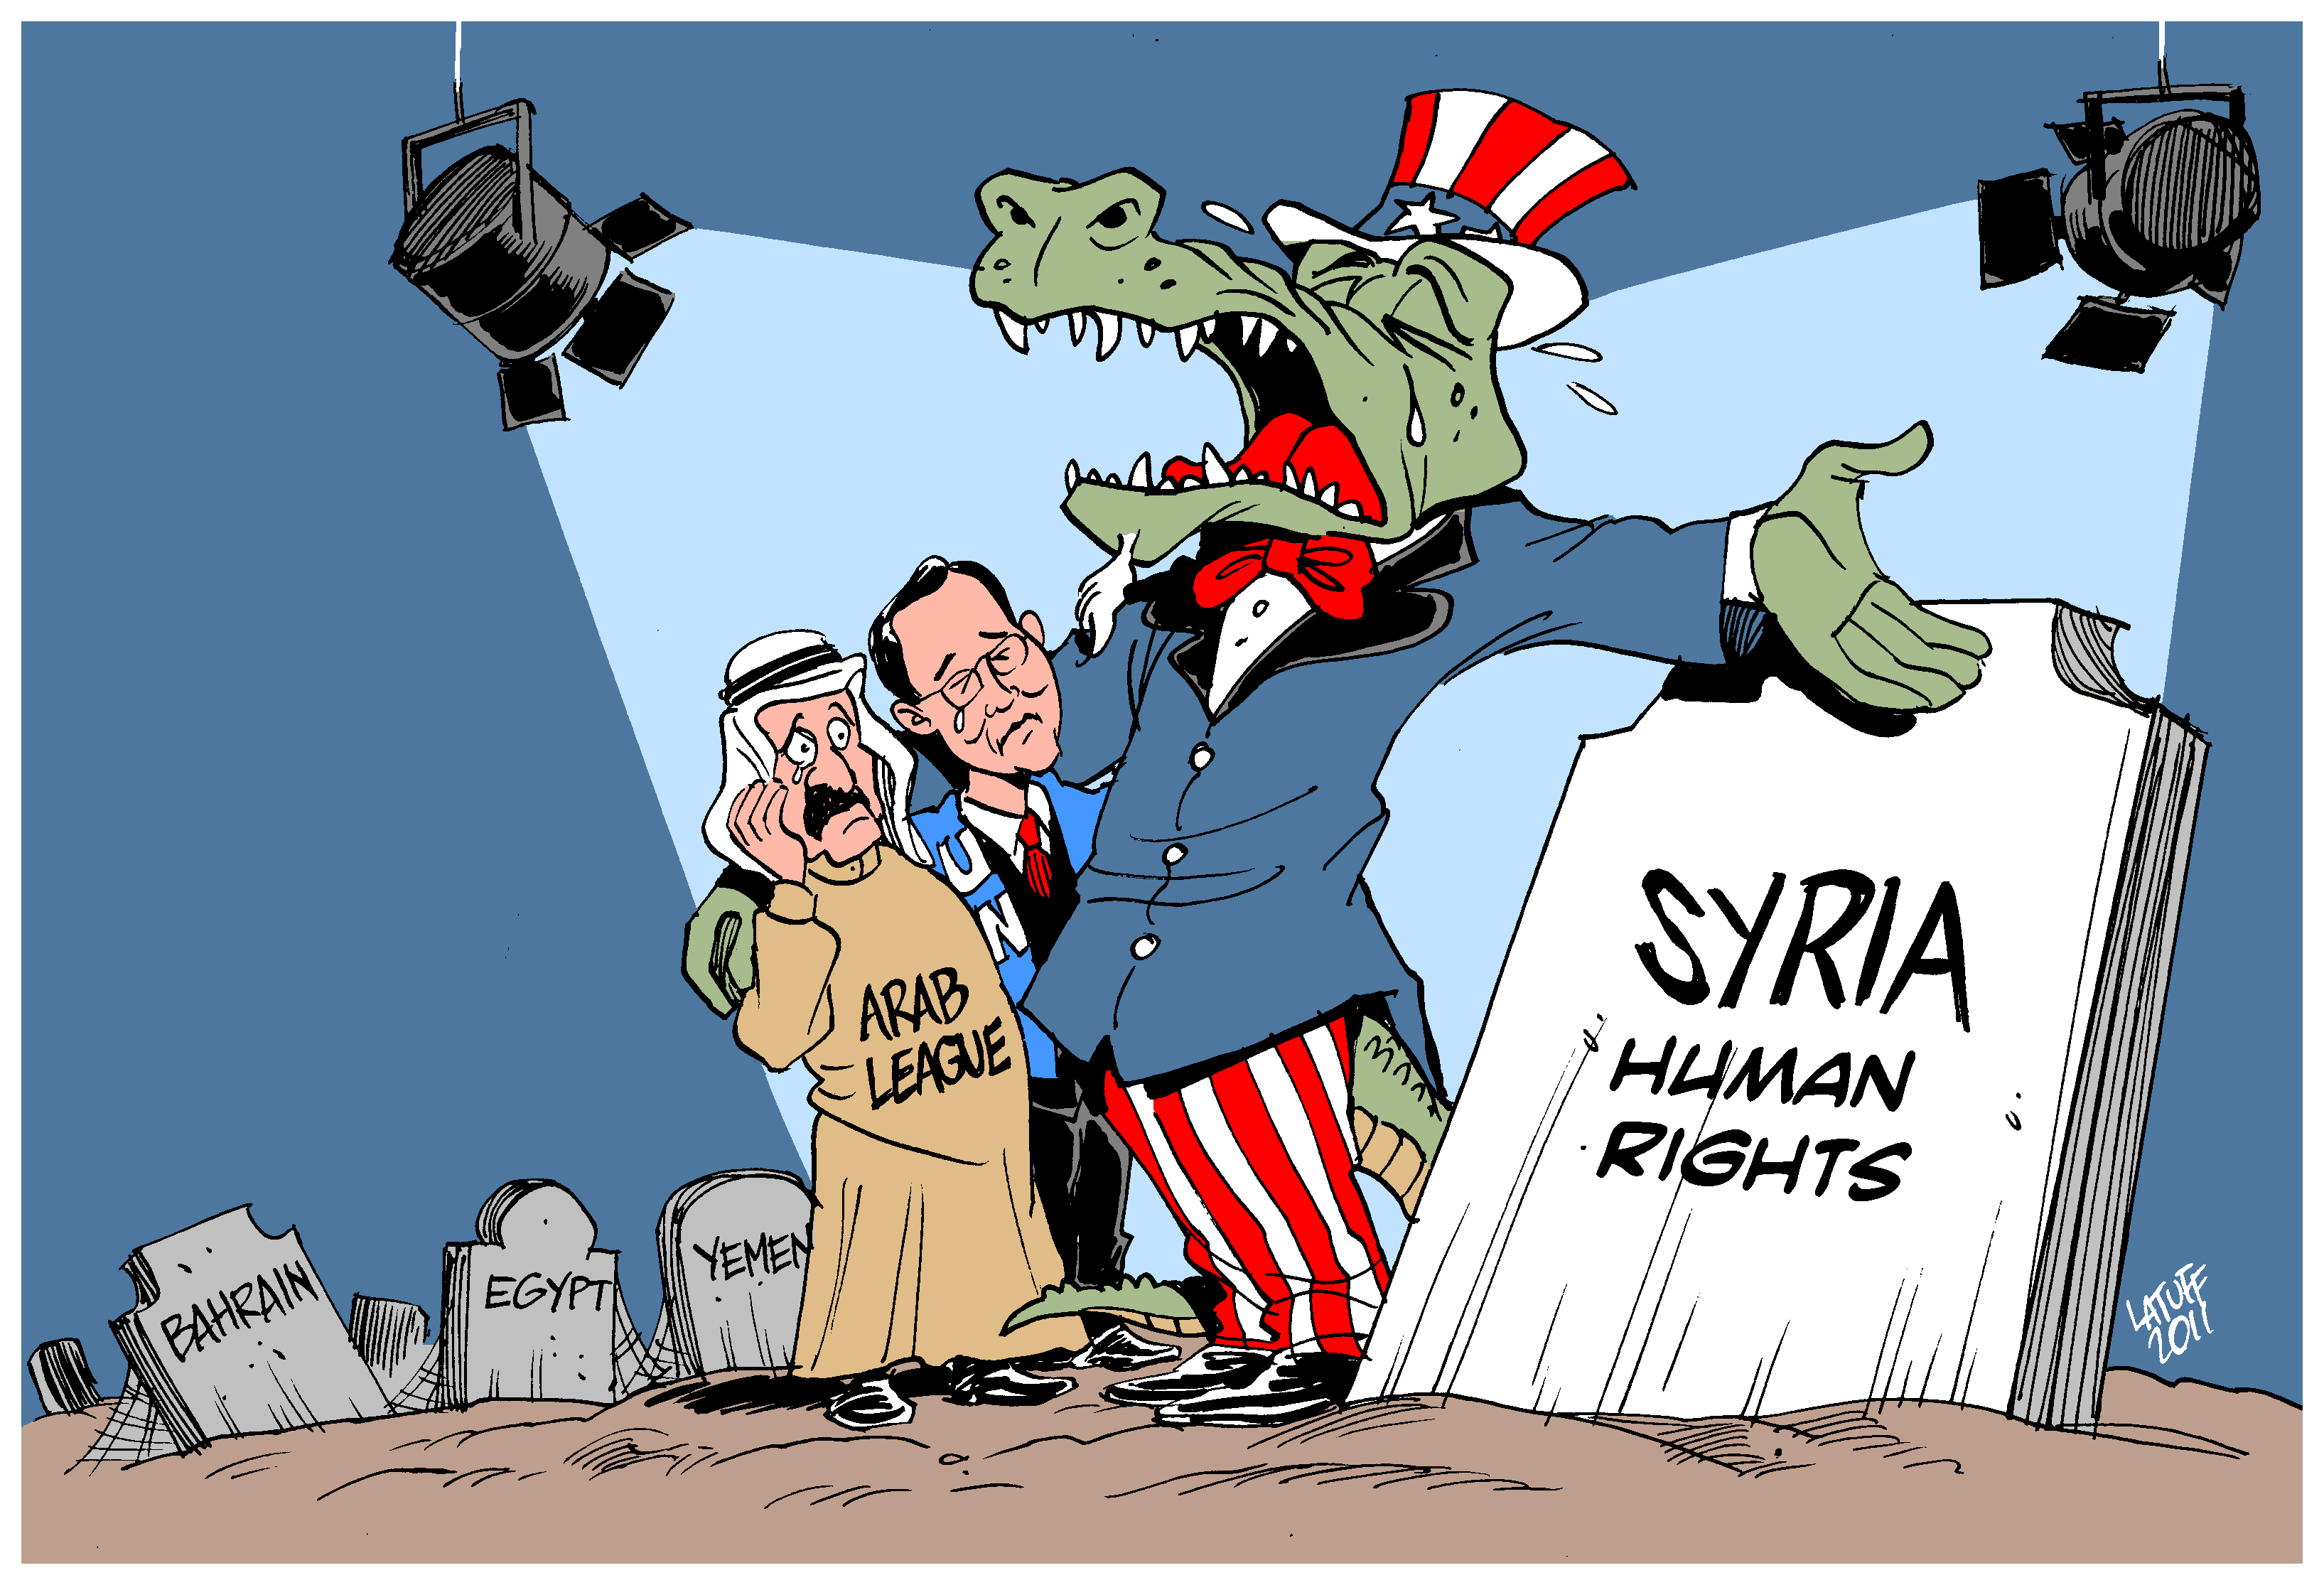 https://upload.wikimedia.org/wikipedia/commons/1/1c/Crocodile_tears_for_Syria.png